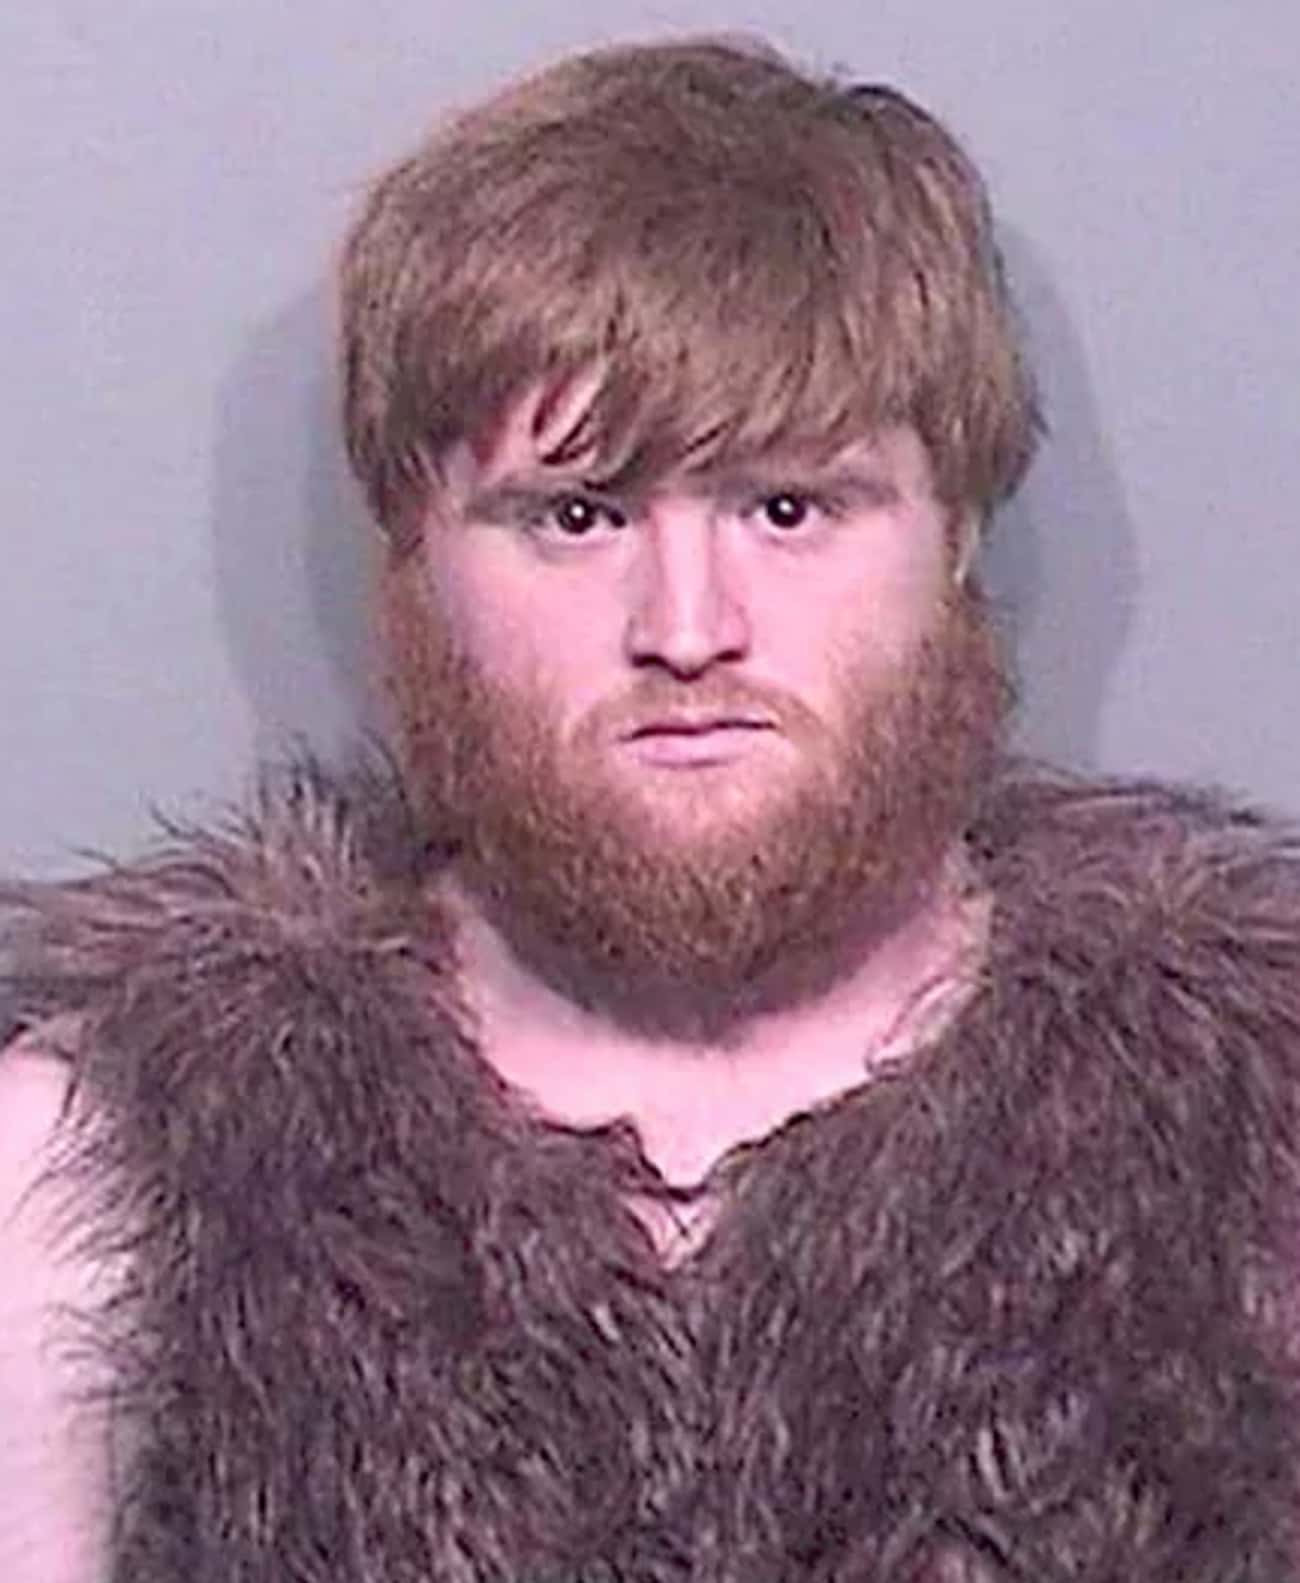 The Caveman Life Chose Him is listed (or ranked) 2 on the list 25 Hilarious Vegas Mugshots That Definitely Did Not Stay In Vegas